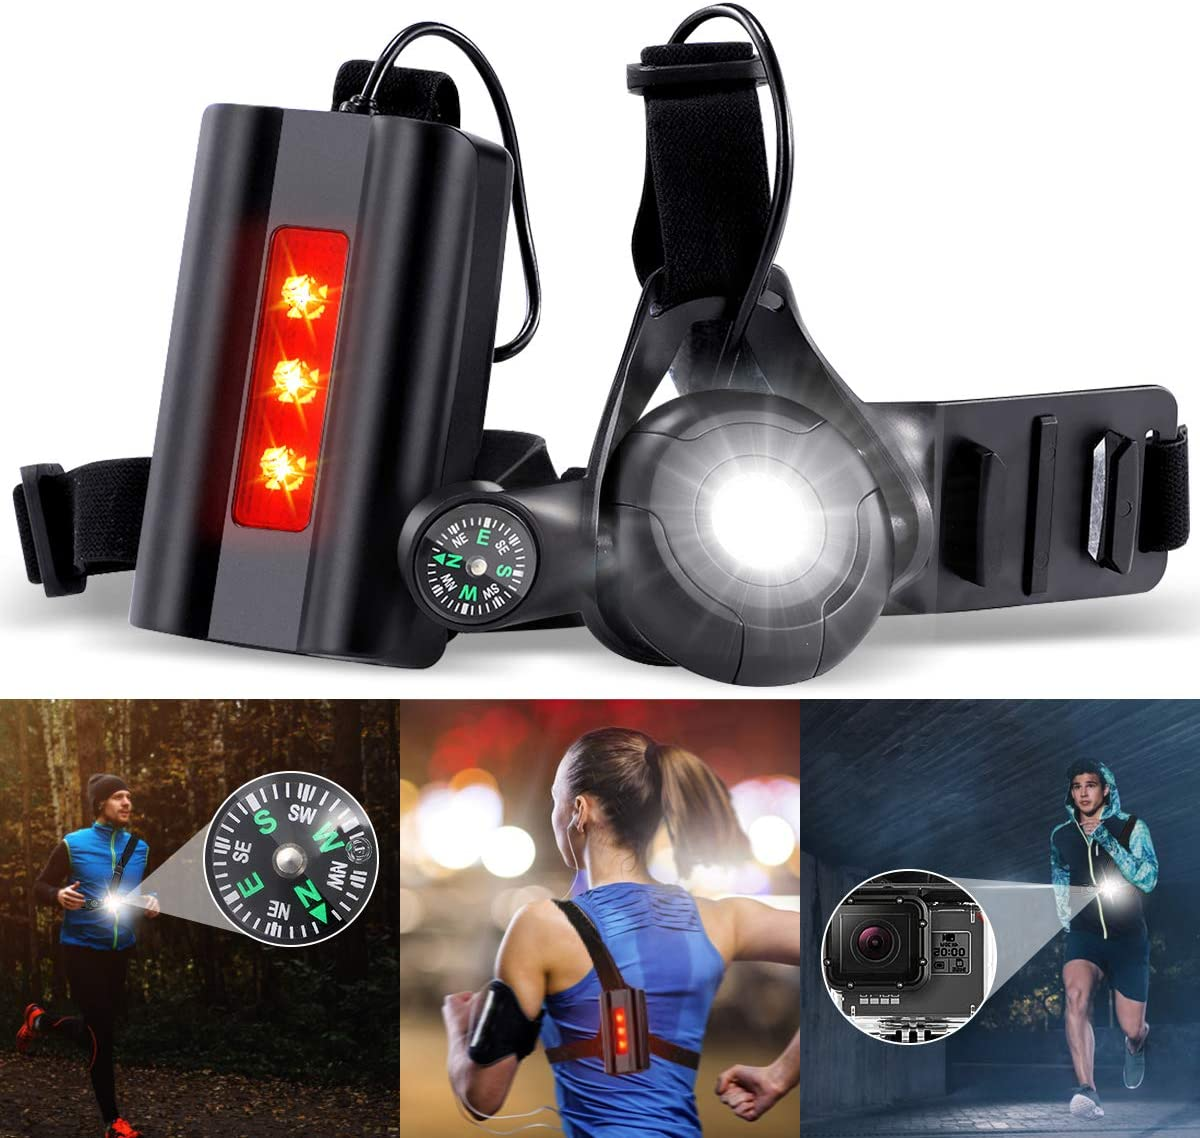 Running Light Chest Lamp Body Torch for Runners Lights 90/° Adjustable Beam Angle with USB Rechargeable Waterproof Taillight 3 Modes for Night Runners Jogging Dog Walking Camping Hiking 360/° Reflective Band